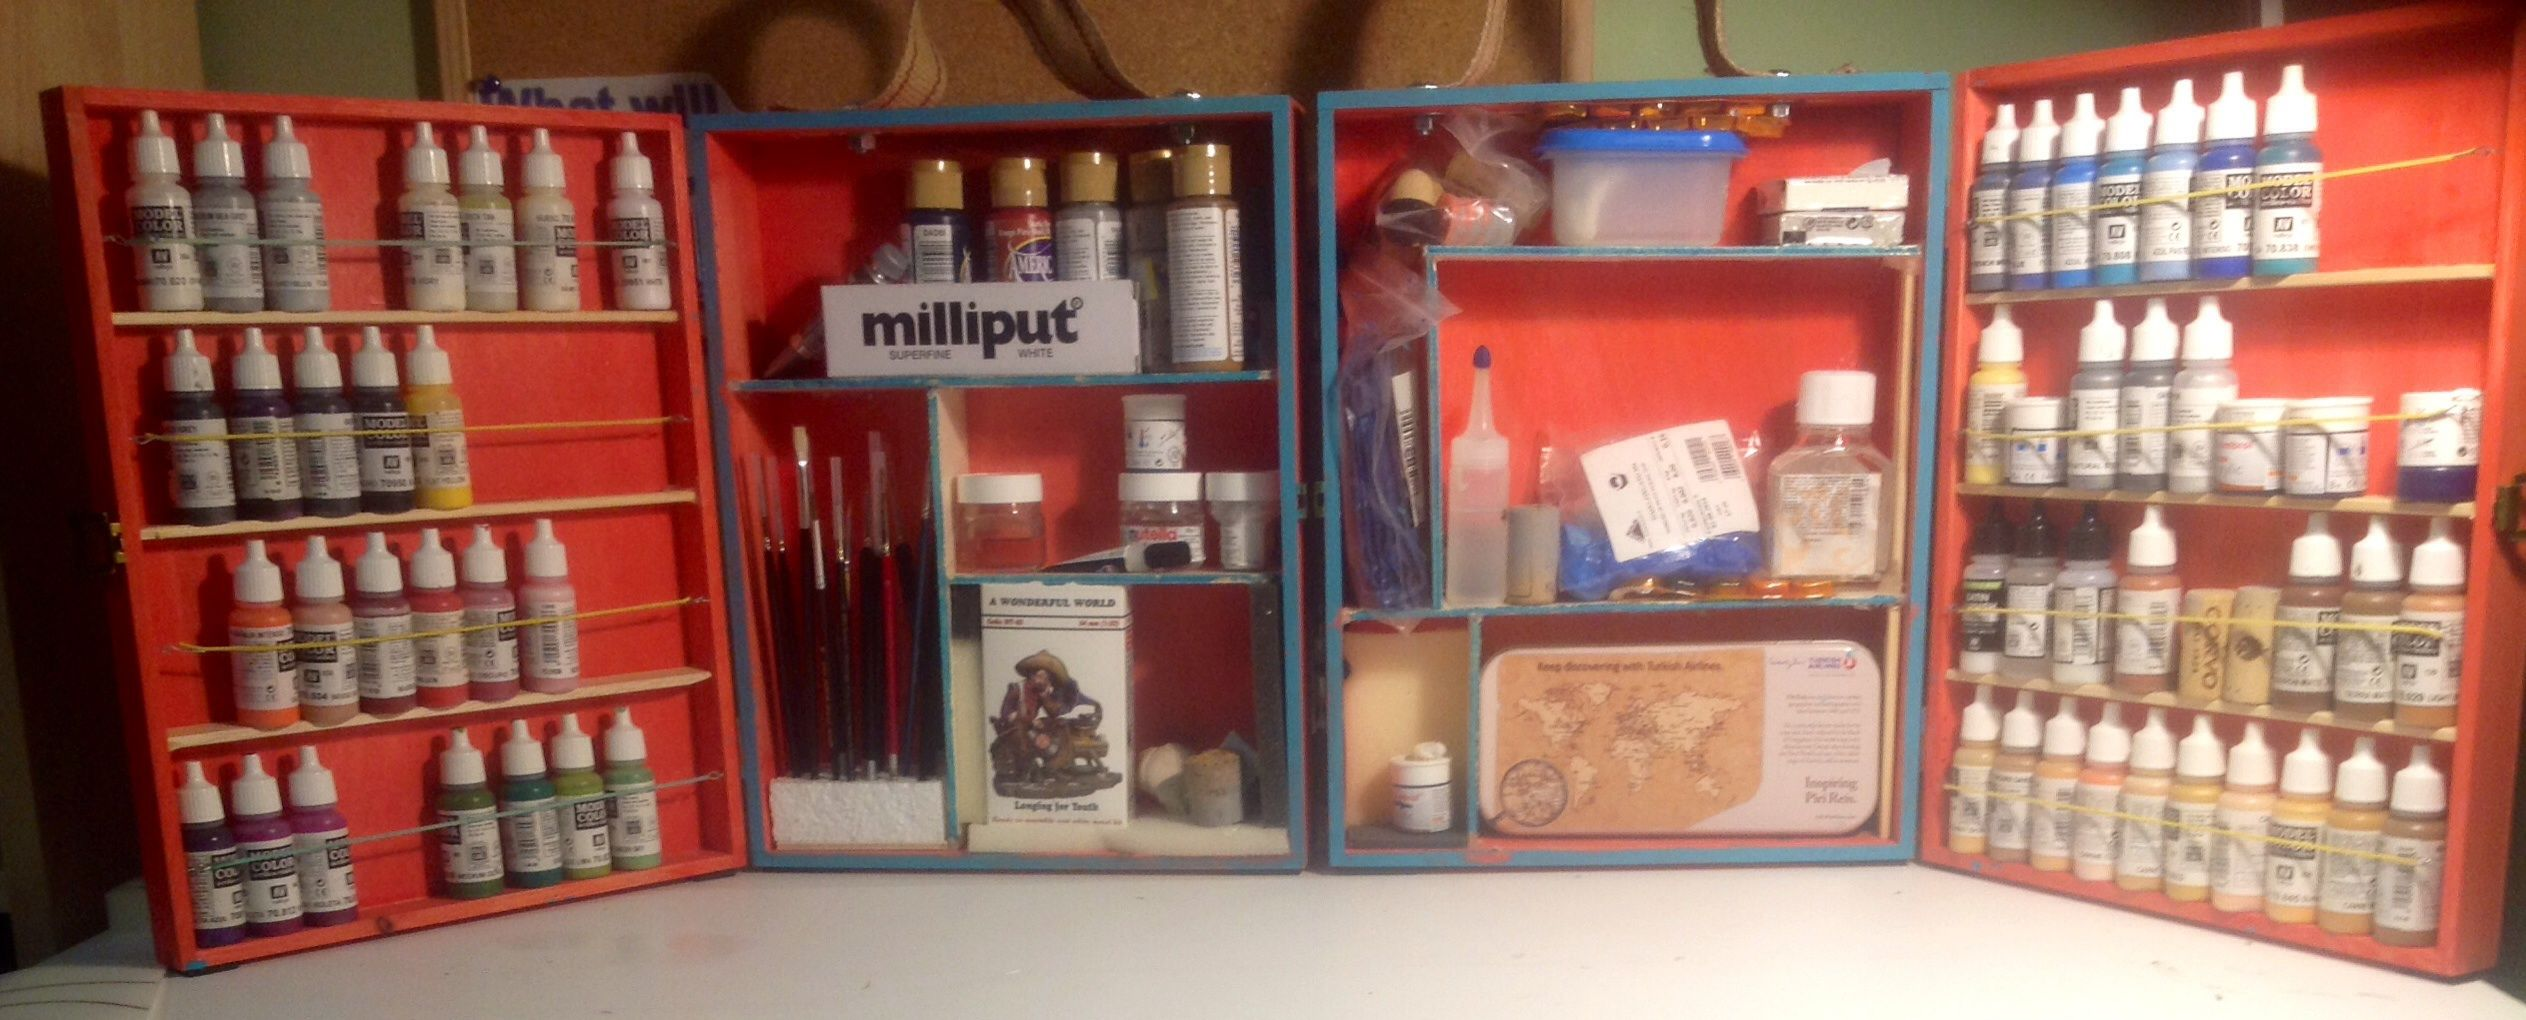 Completed My Personal Portable Paint Station